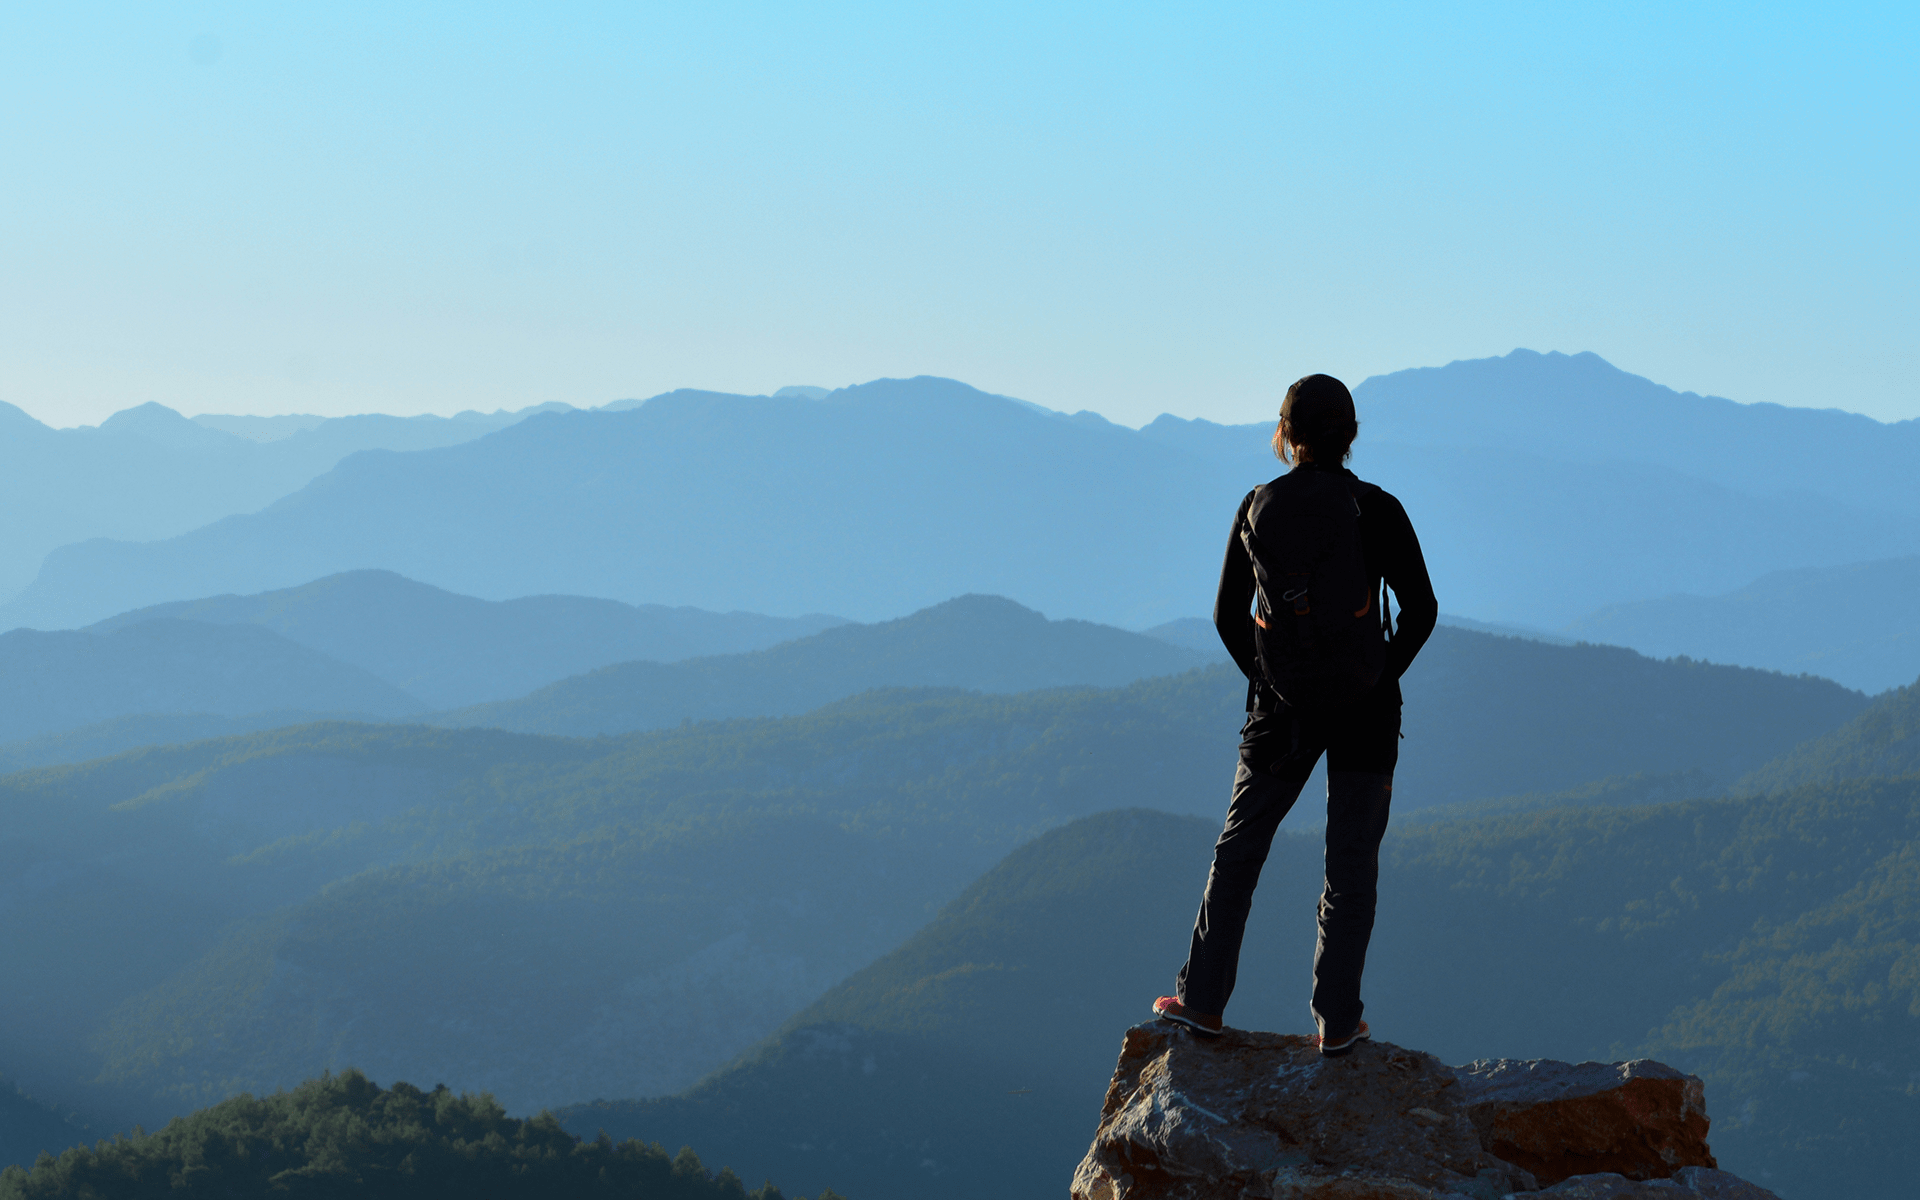 Let Go of Stress and Welcome Wisdom—A woman stands on a mountain peek looking out over layers of mountains in the distance.